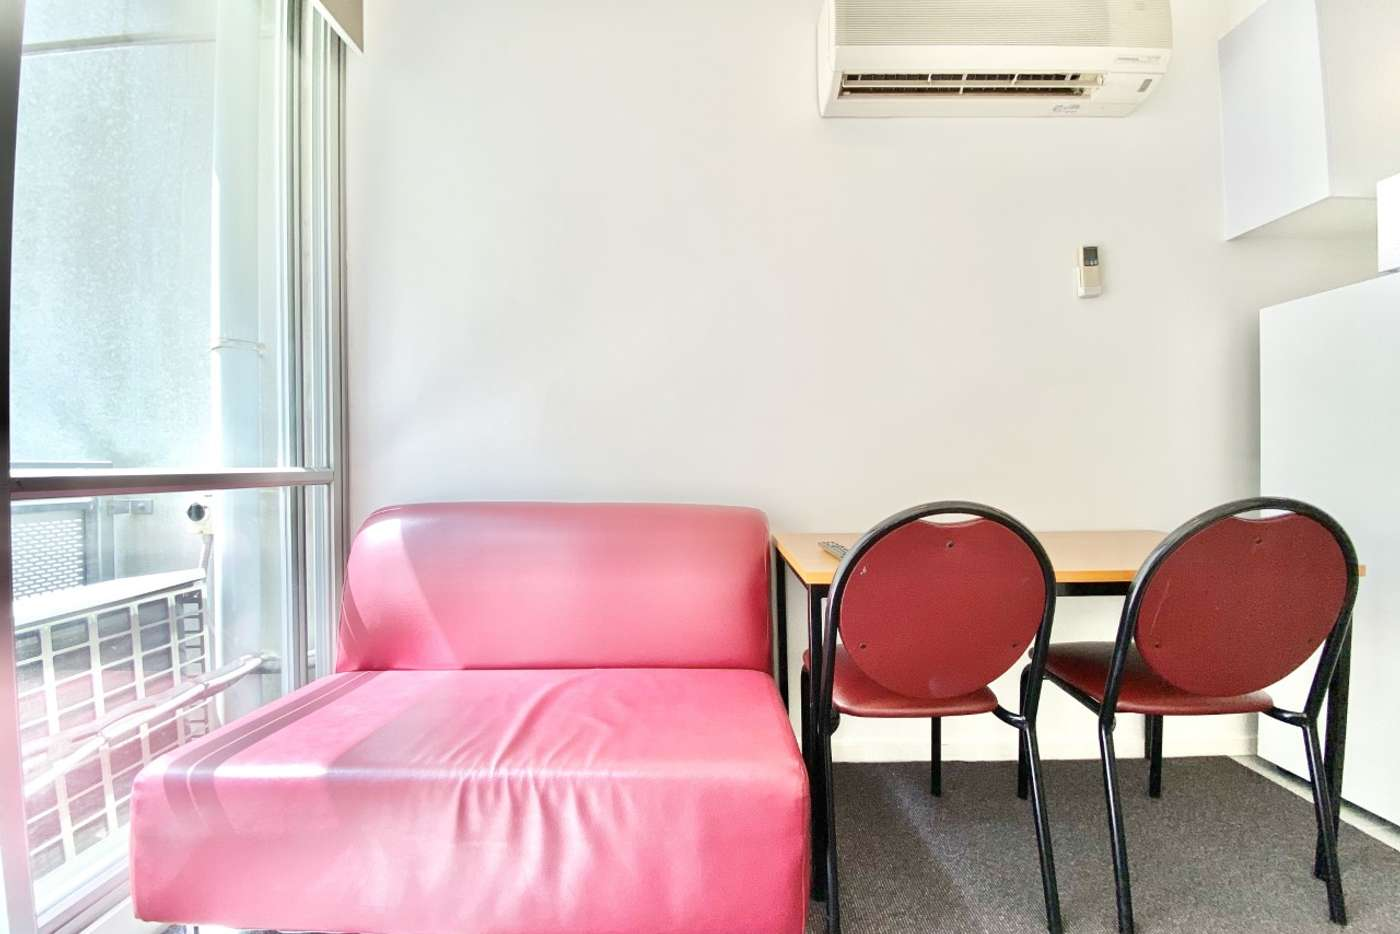 Seventh view of Homely house listing, 619/488 Swanston Street, Carlton VIC 3053